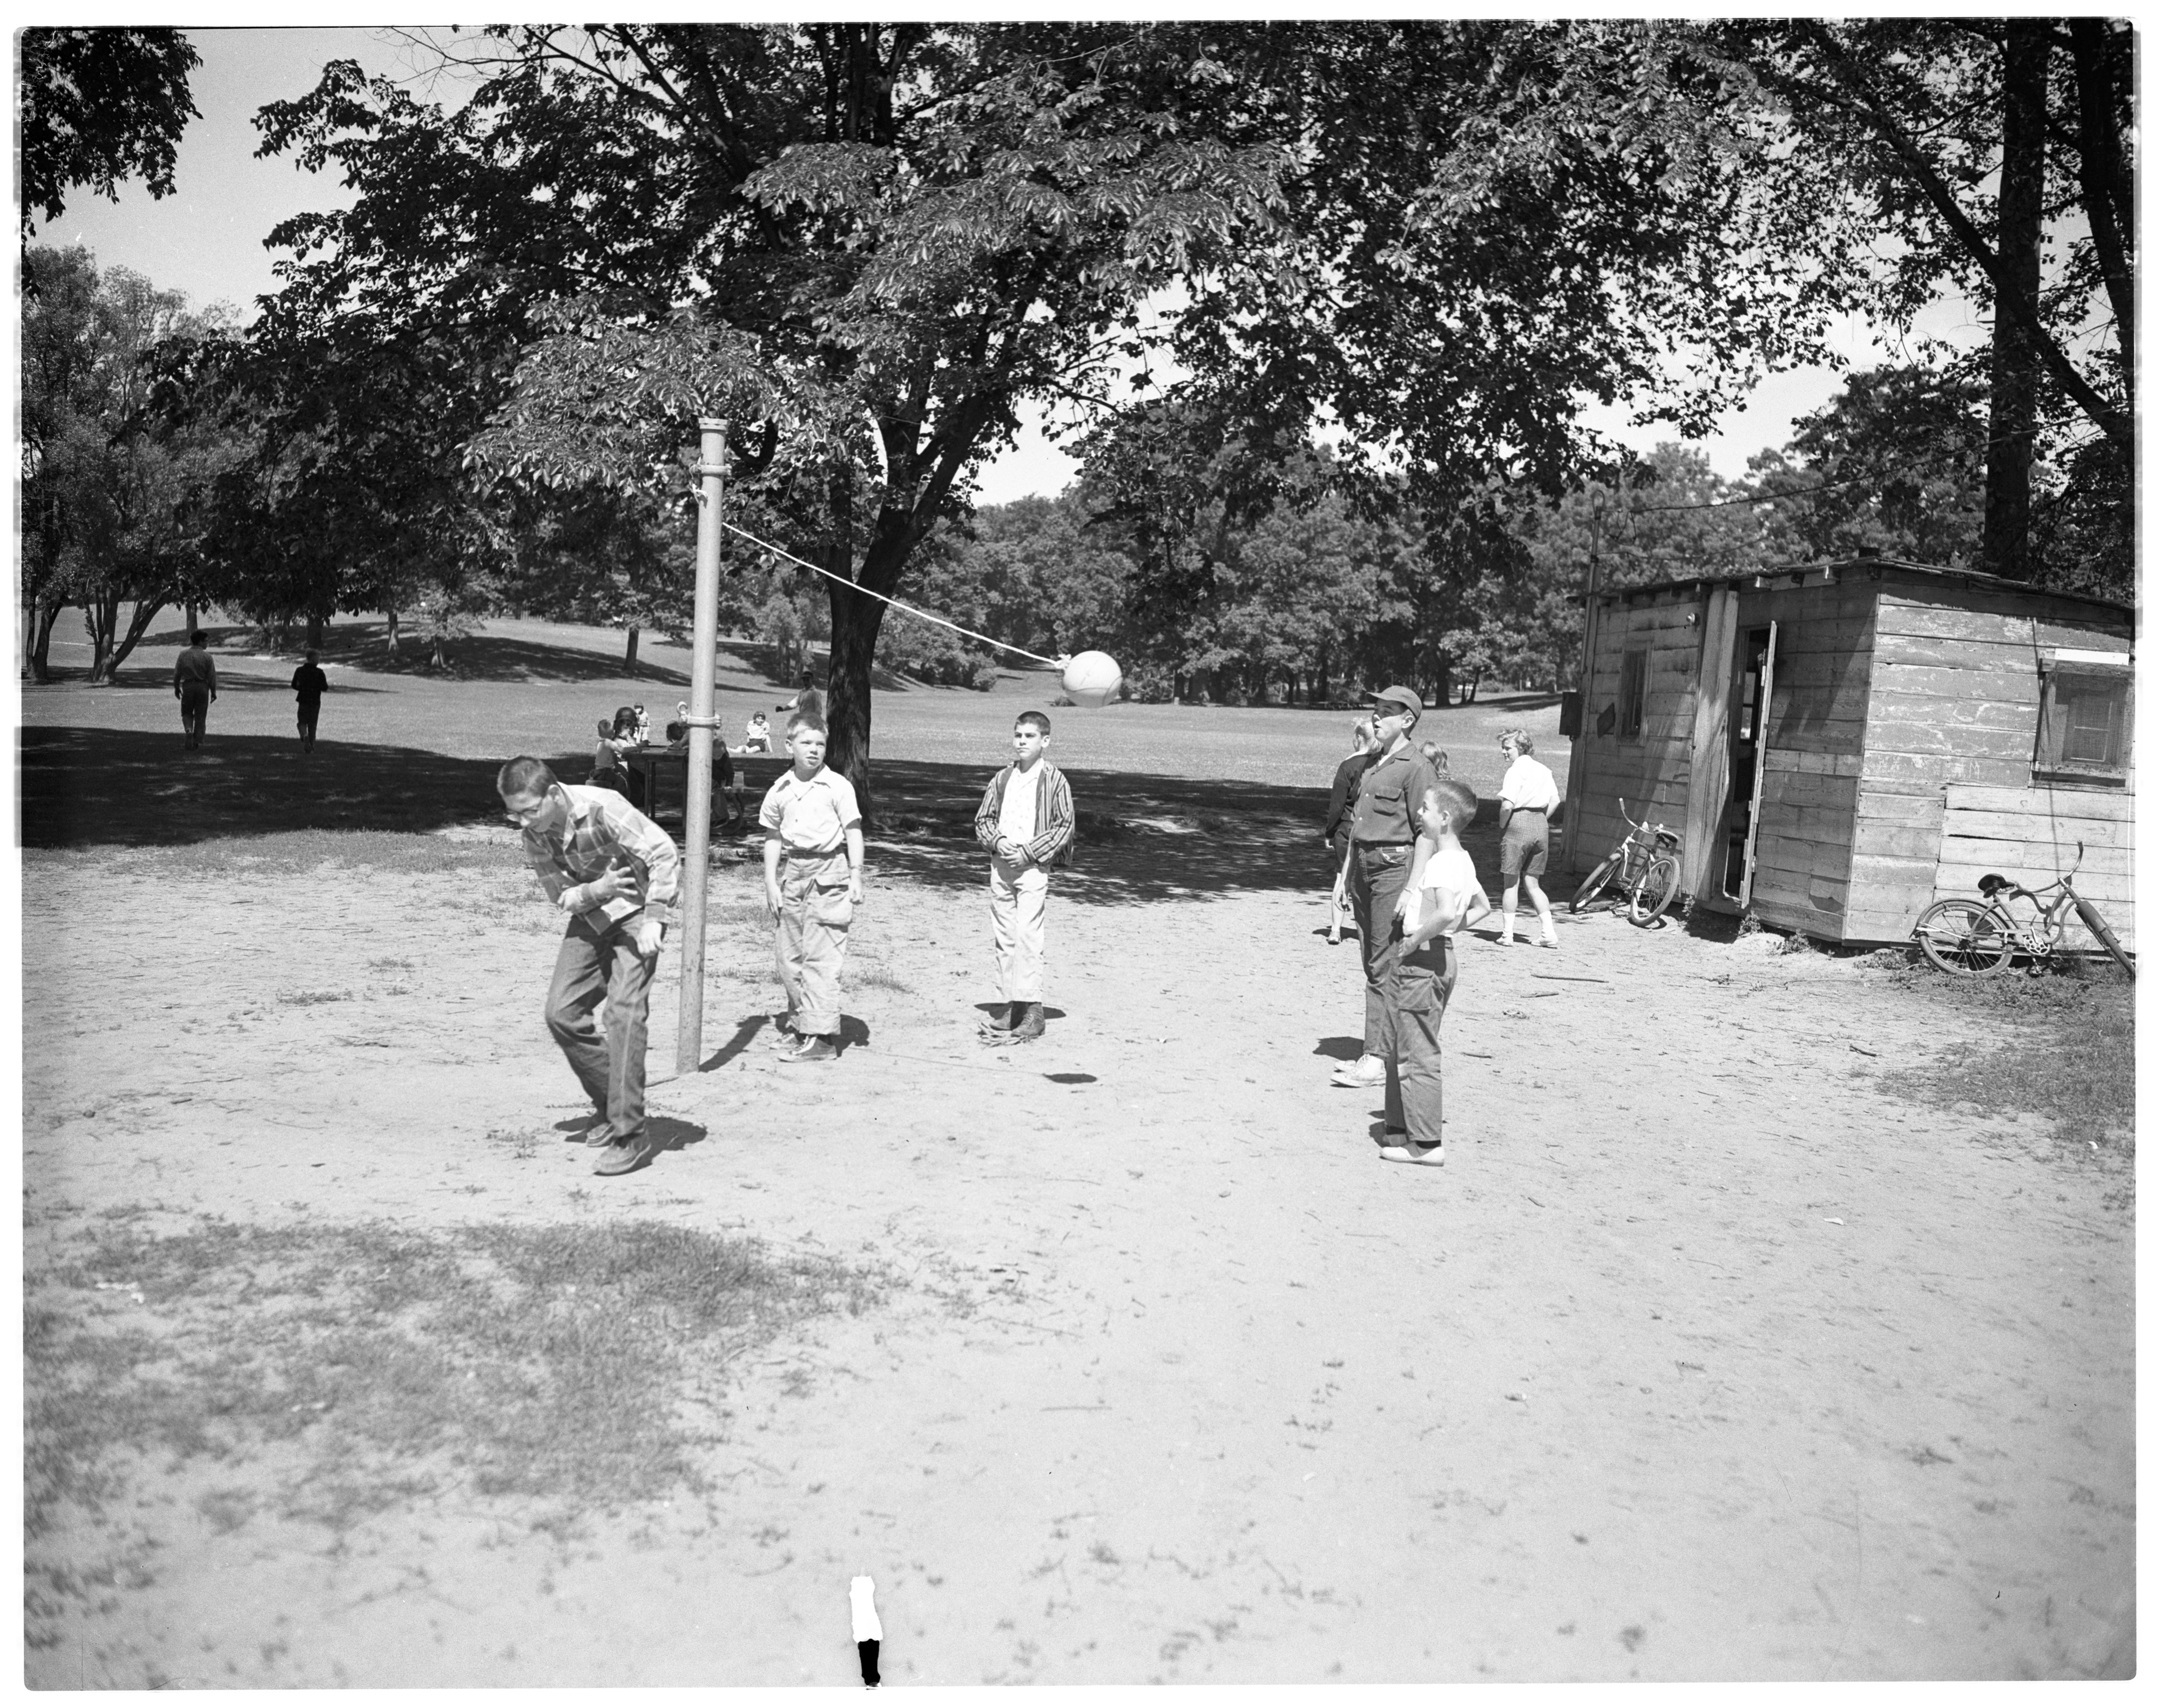 Tetherball in West Park image